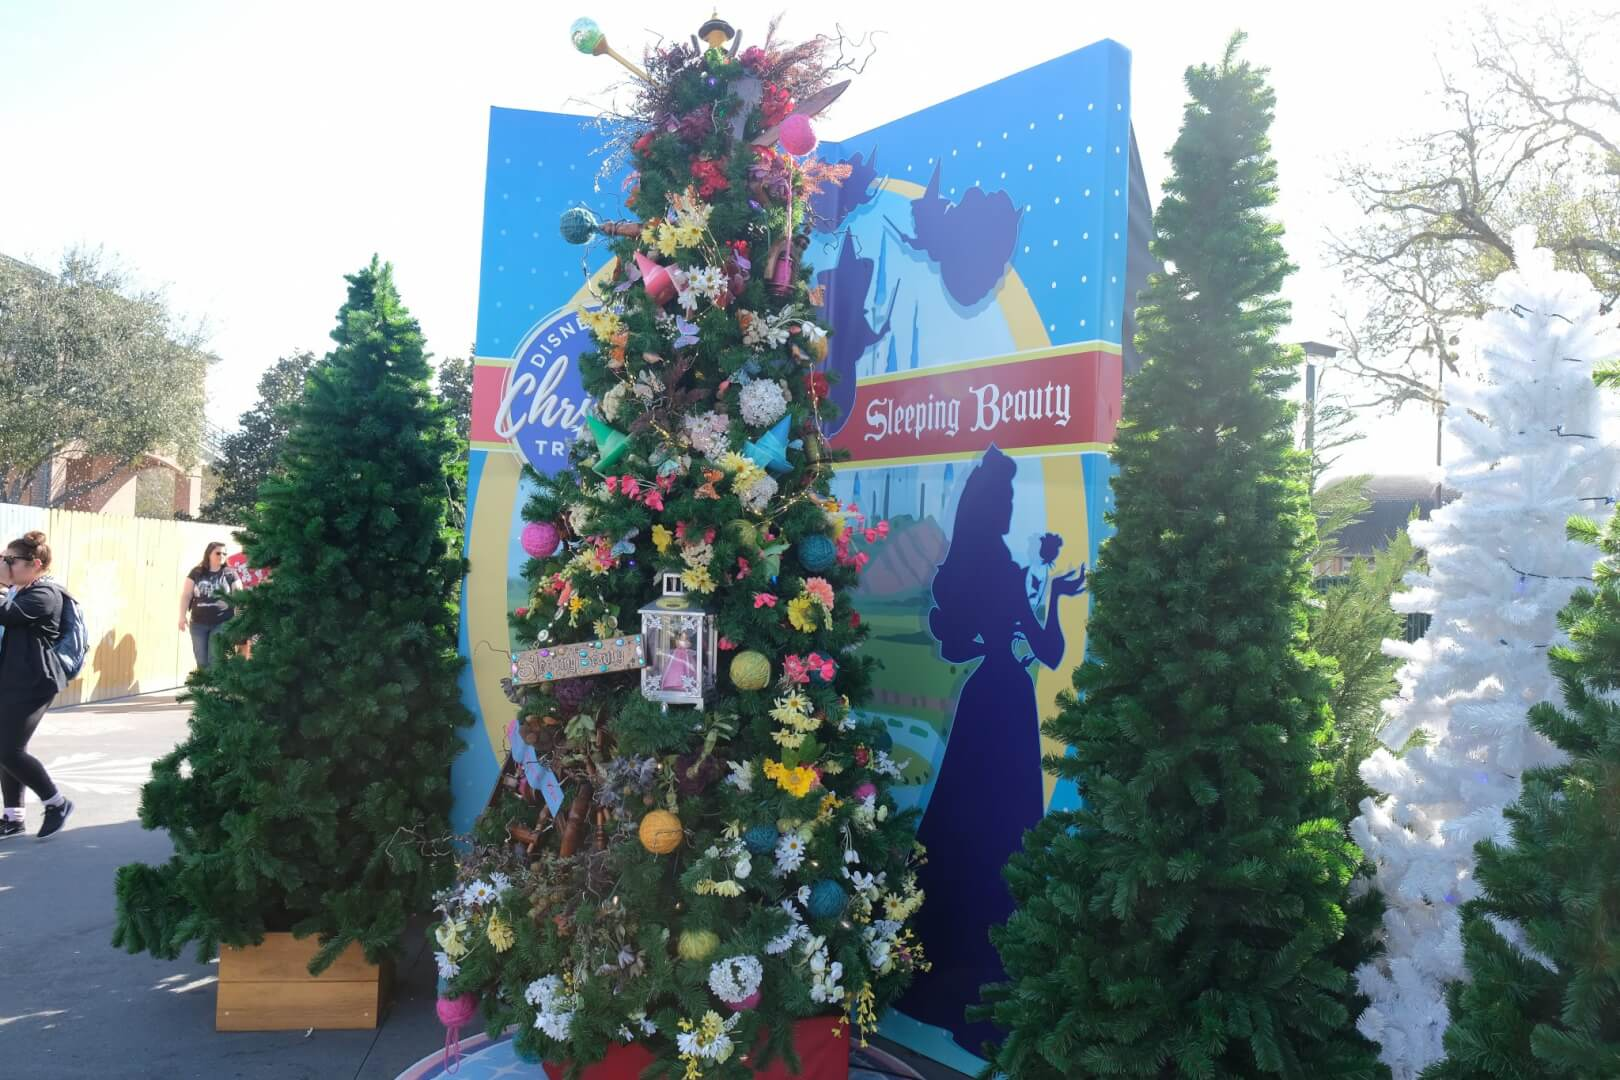 Themed Off One Of Disneys Classic Princesses, This Tree Explodes